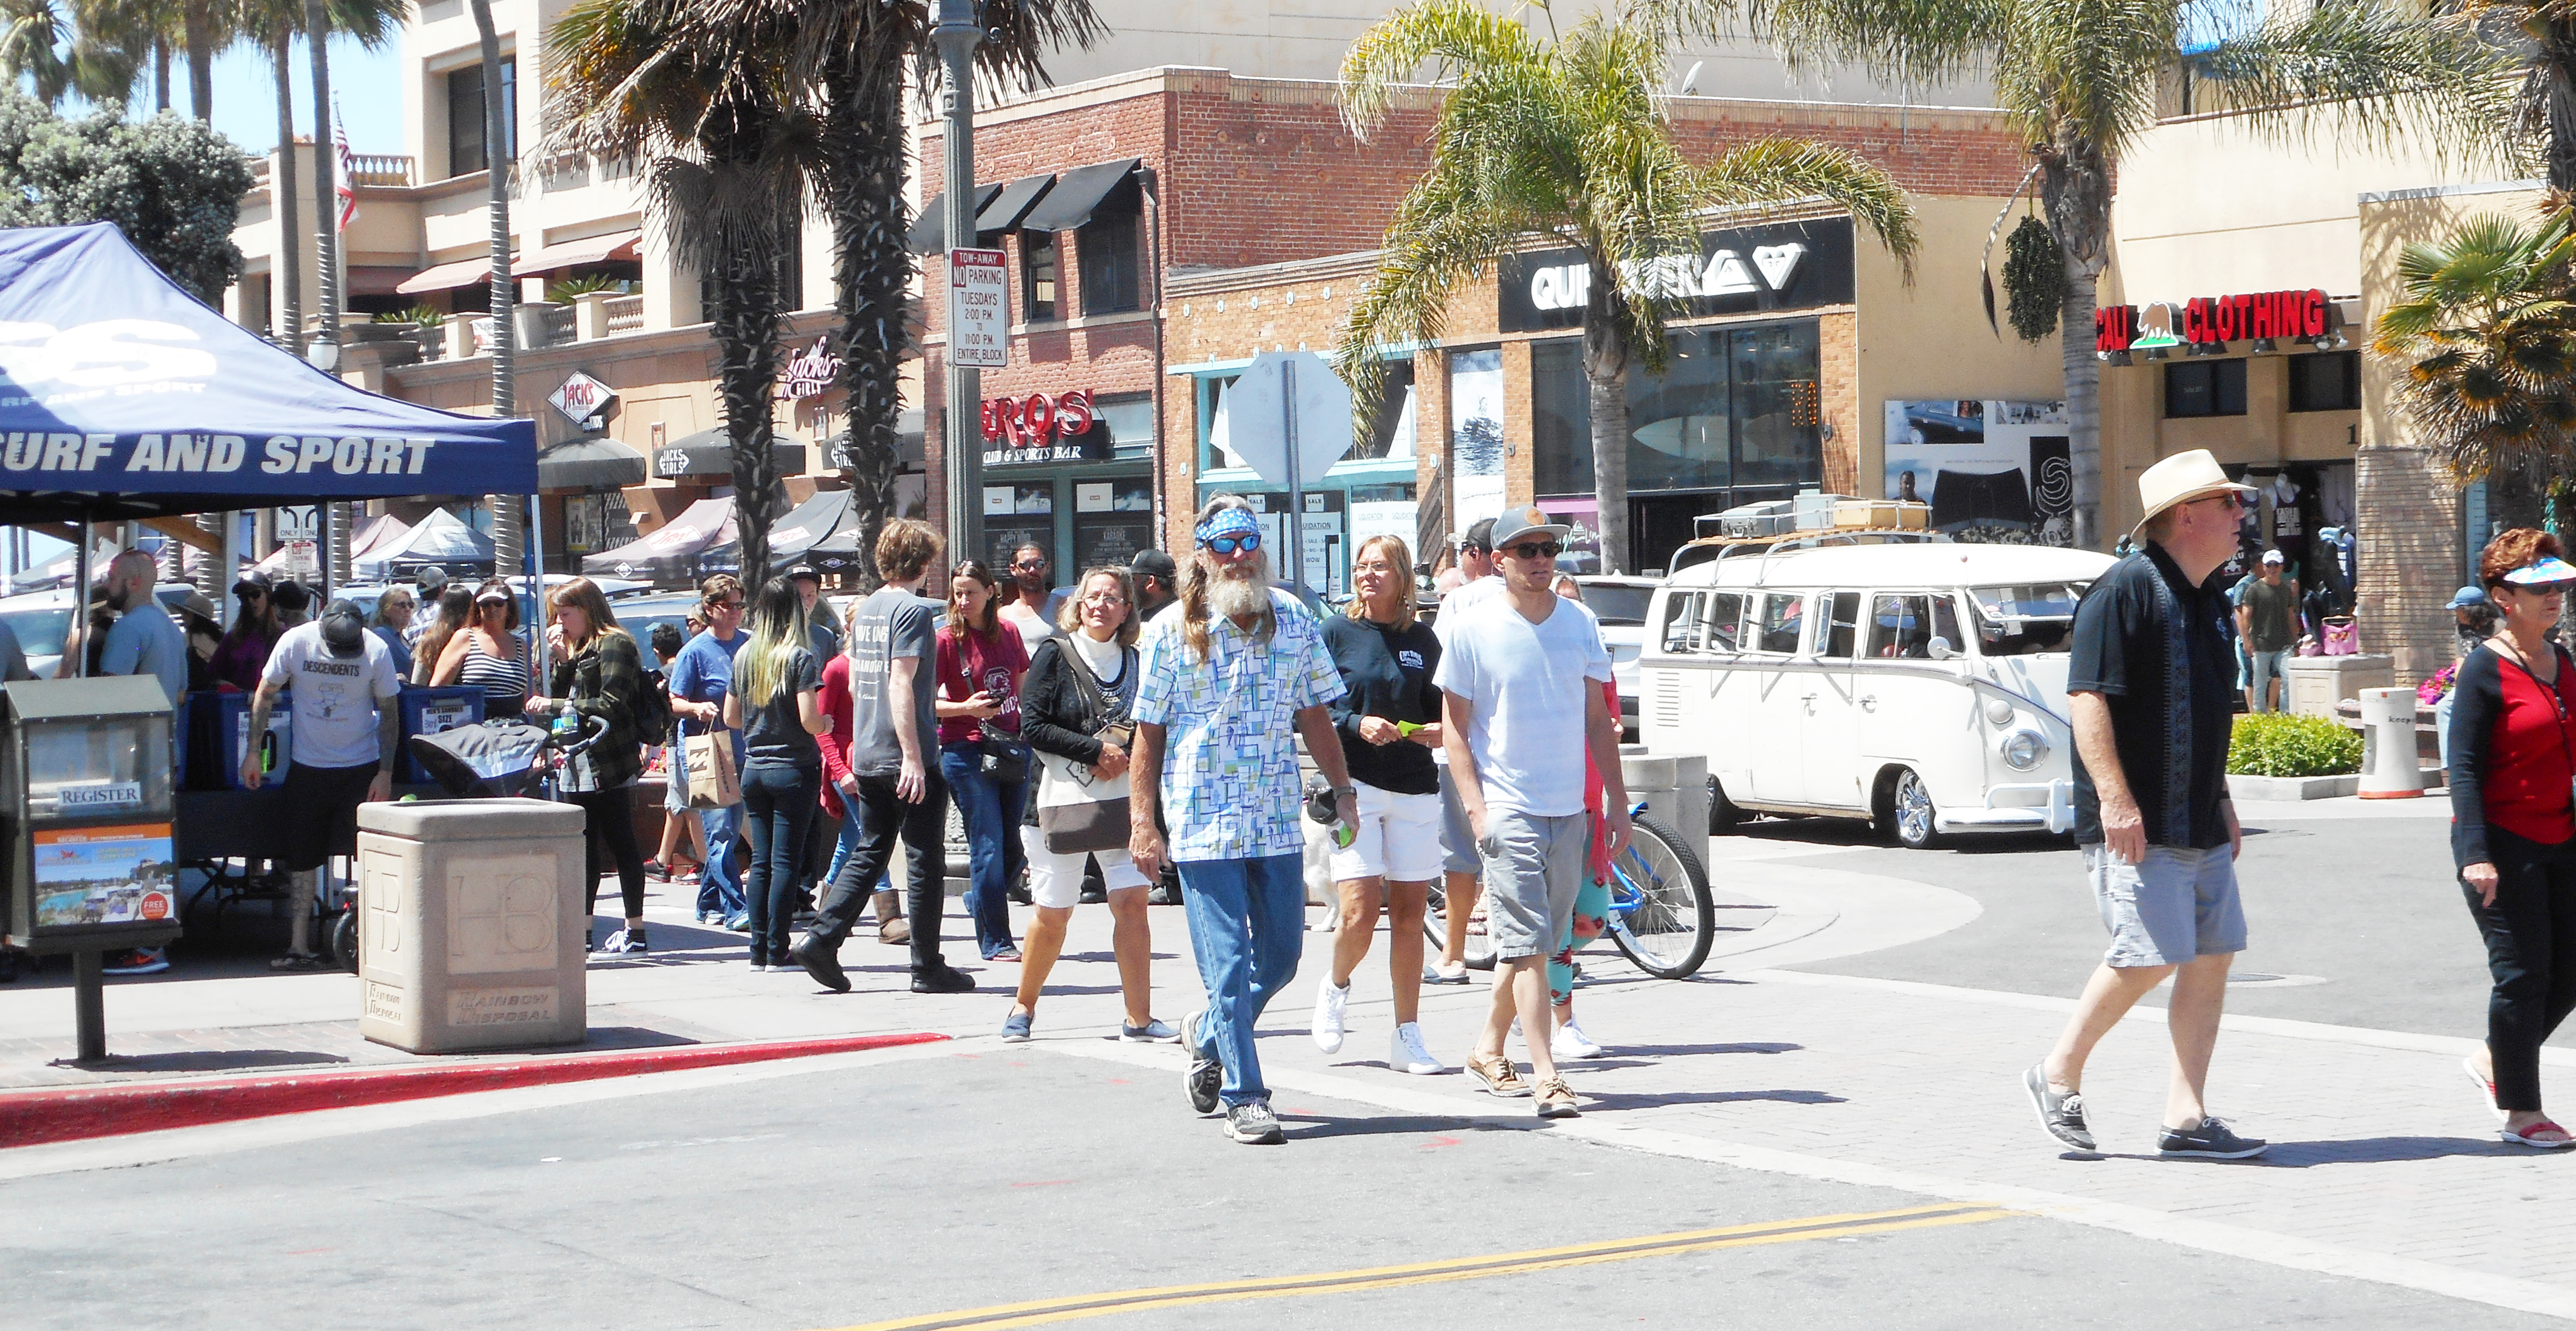 Cleaner dogs and downtown on agenda orange county tribune the huntington beach city council will hear a report on the cleaning and maintenance of the downtown area oc tribune photo solutioingenieria Image collections